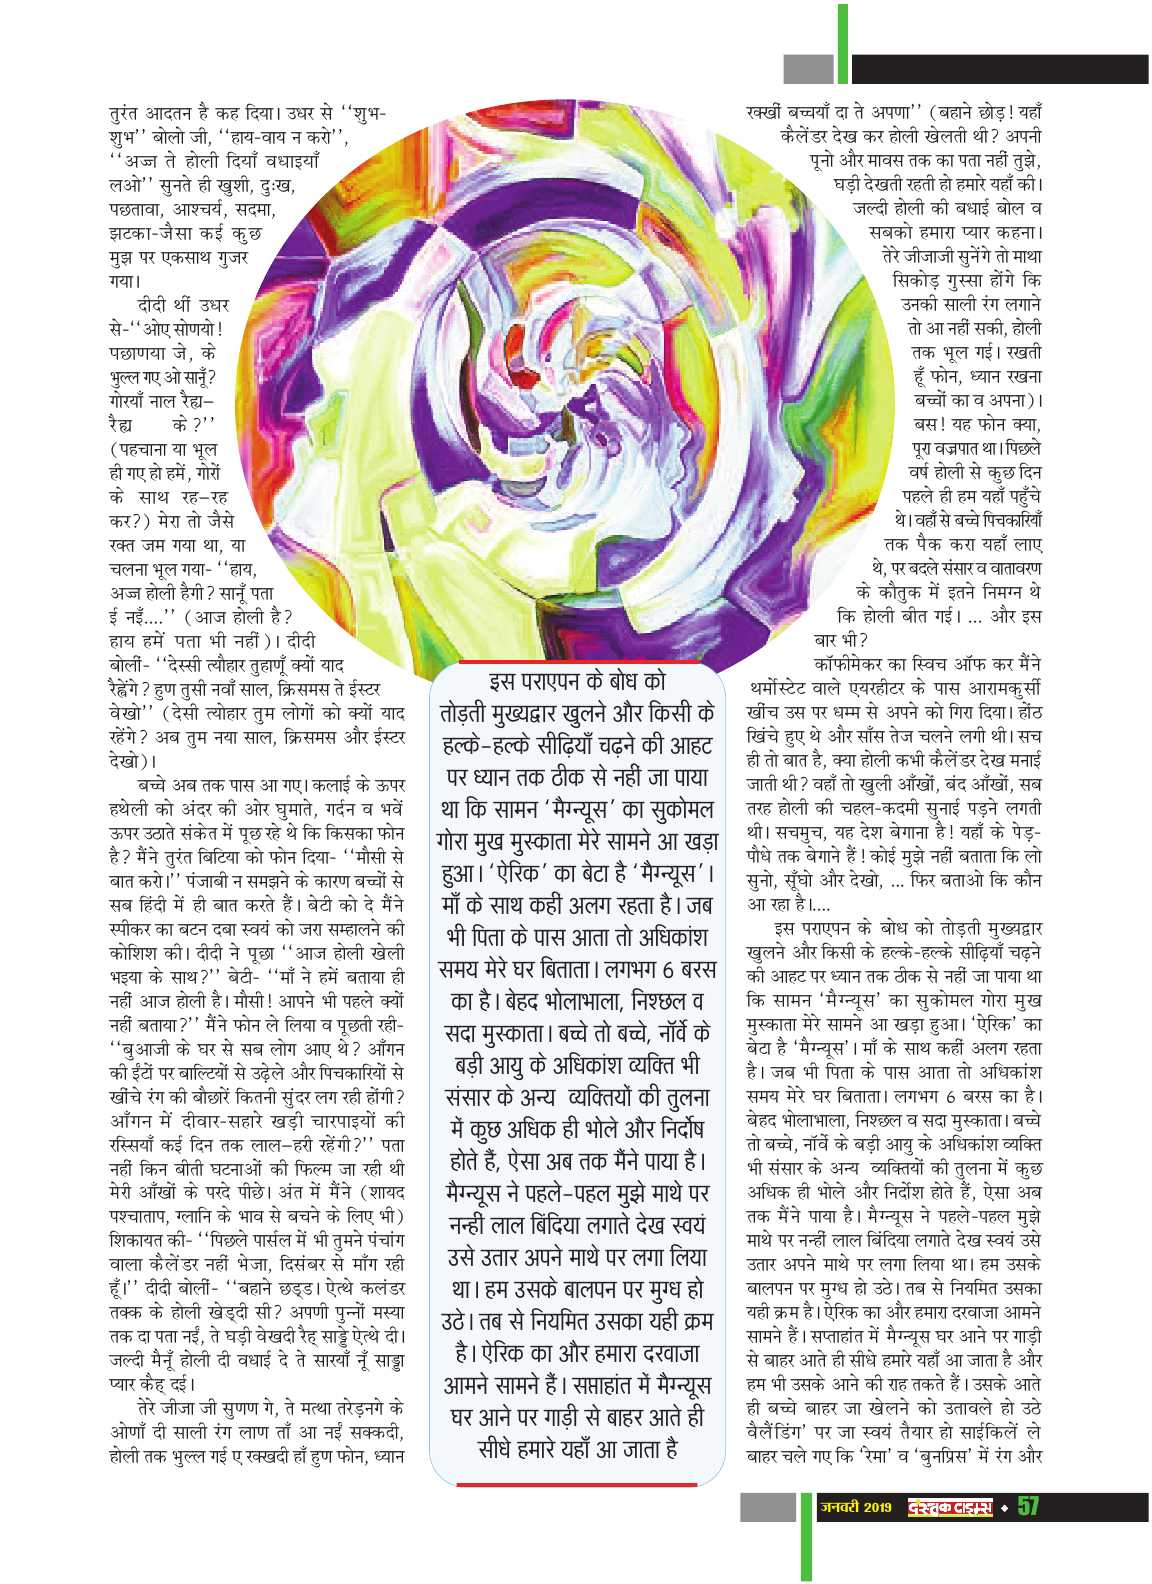 Dastak Times for E-Magazine 15 Jan 2019 new59